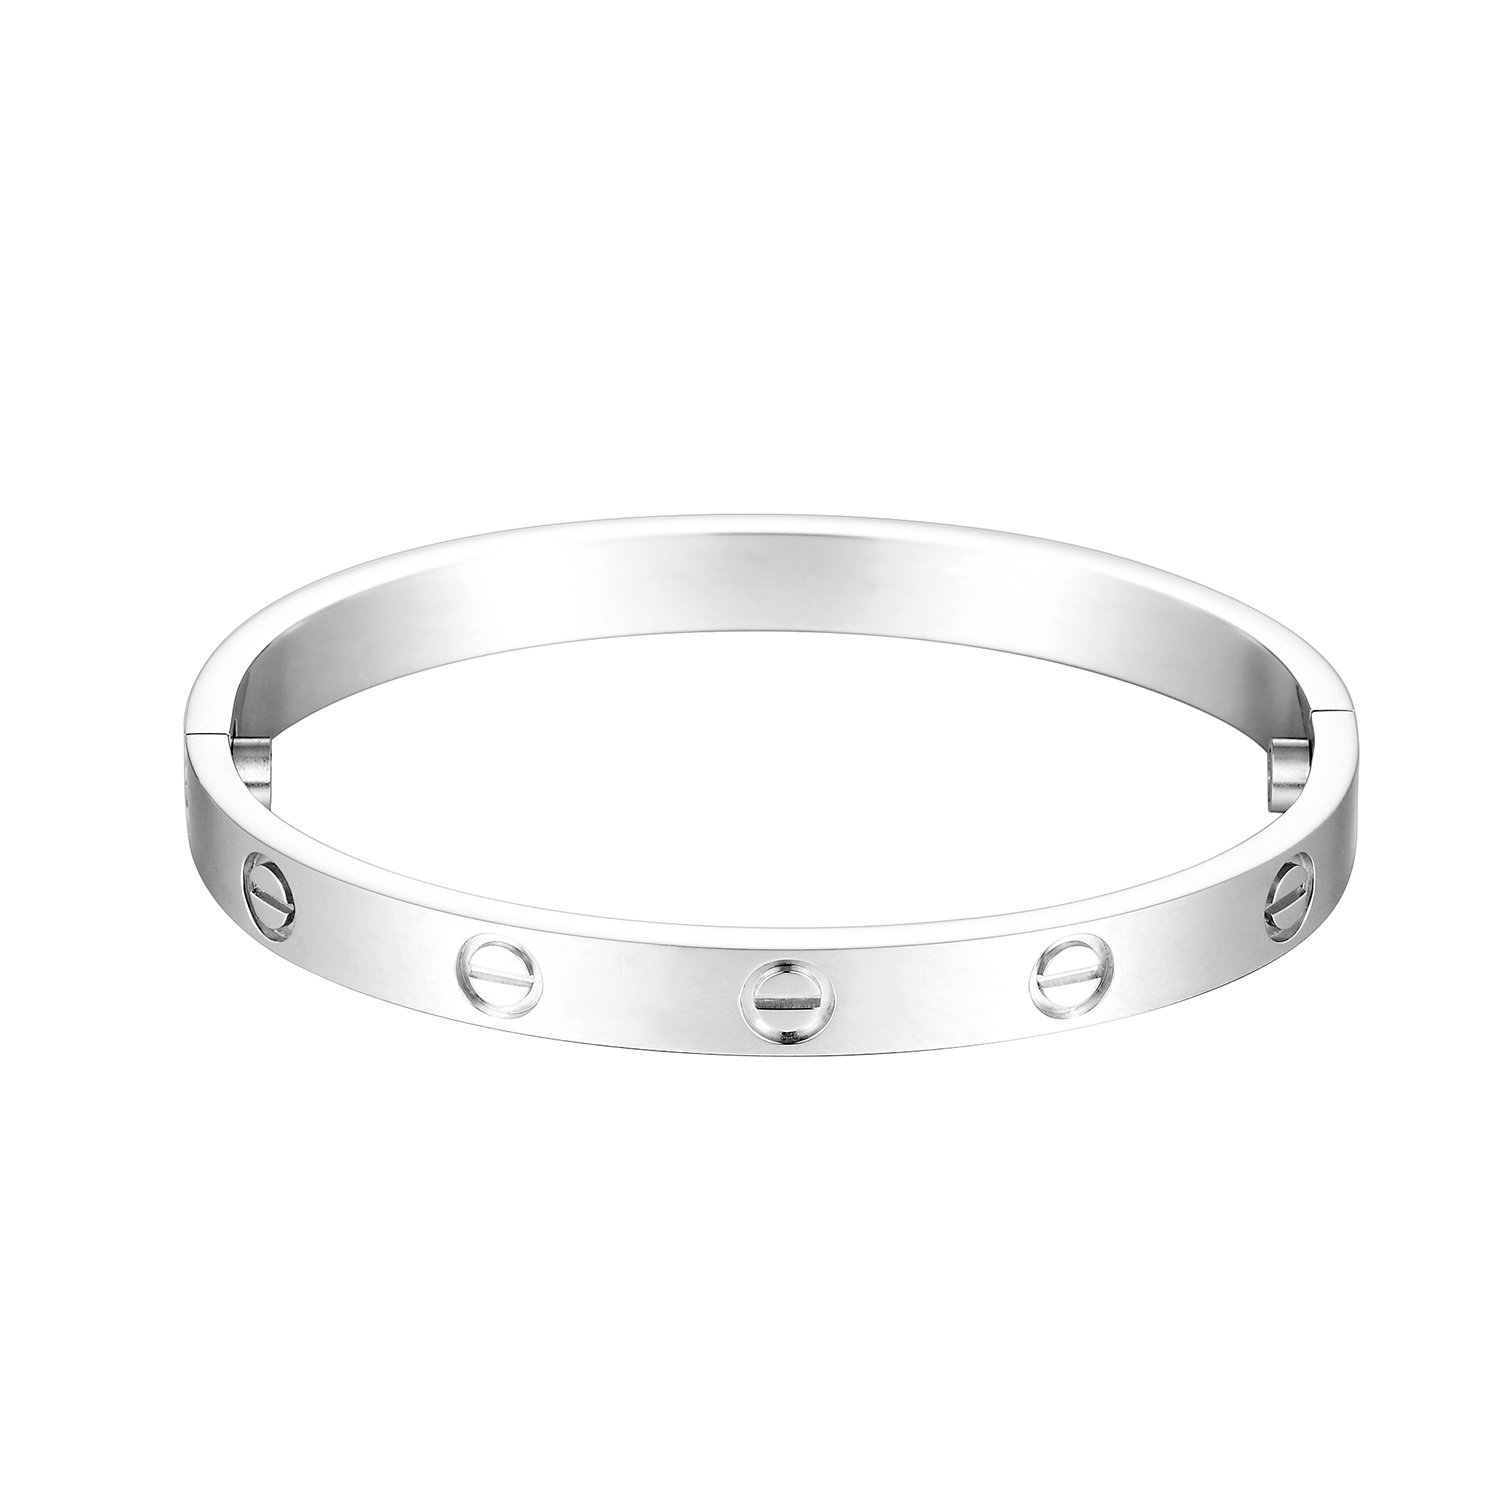 Z.RACLE Love Bangle Bracelet Stainless Steel with Screw - Best Gift for Love - 6.3IN White Gold by Z.RACLE (Image #2)